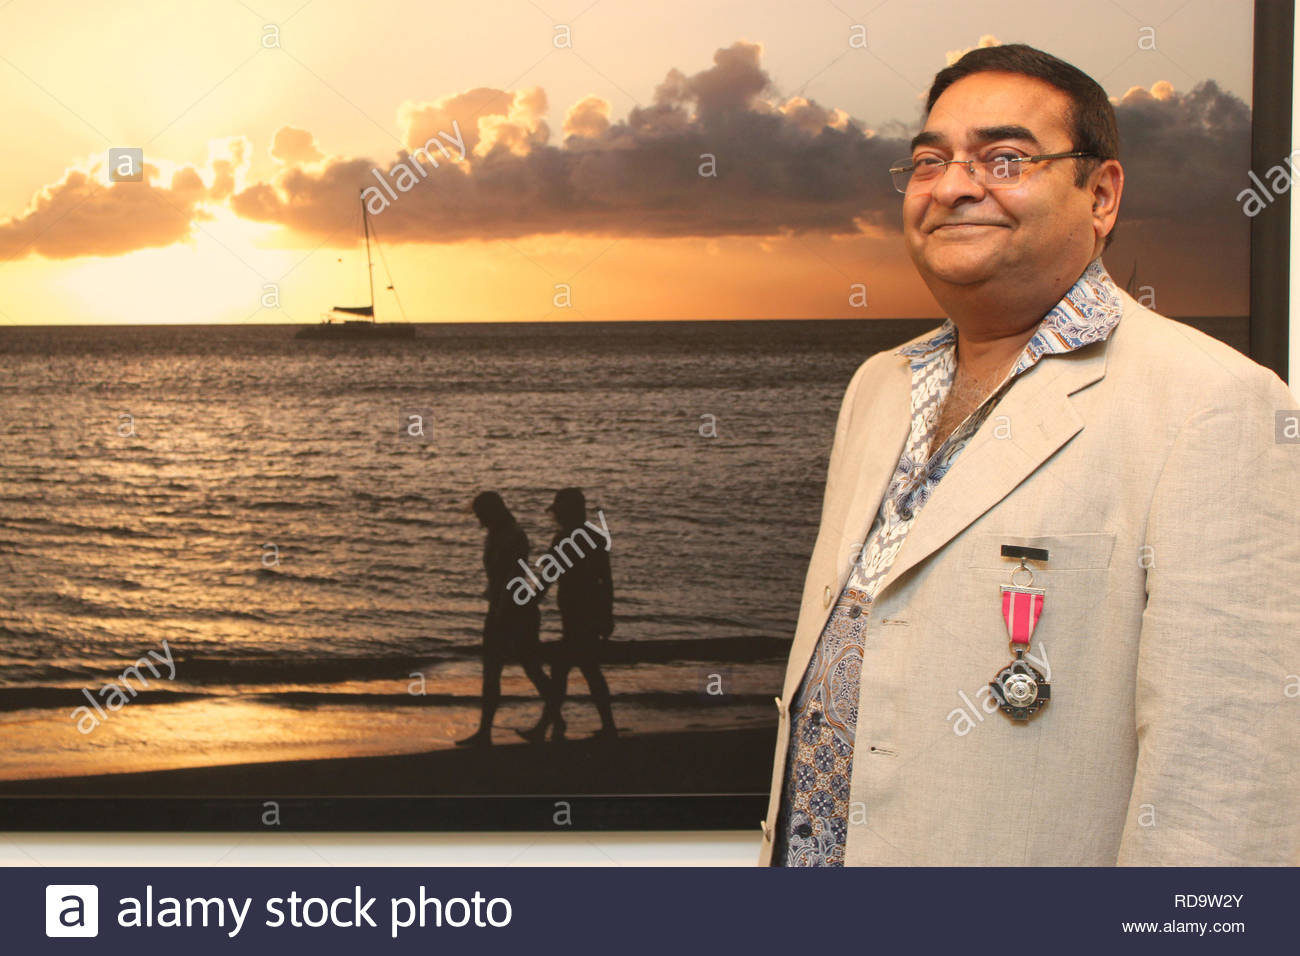 Homeopath Dr Mukesh Batra at the inauguration of his 8th annual charity photography exhibition in Mumbai, India on September 13, 2012. (SOLARIS IMAGES) - Stock Image